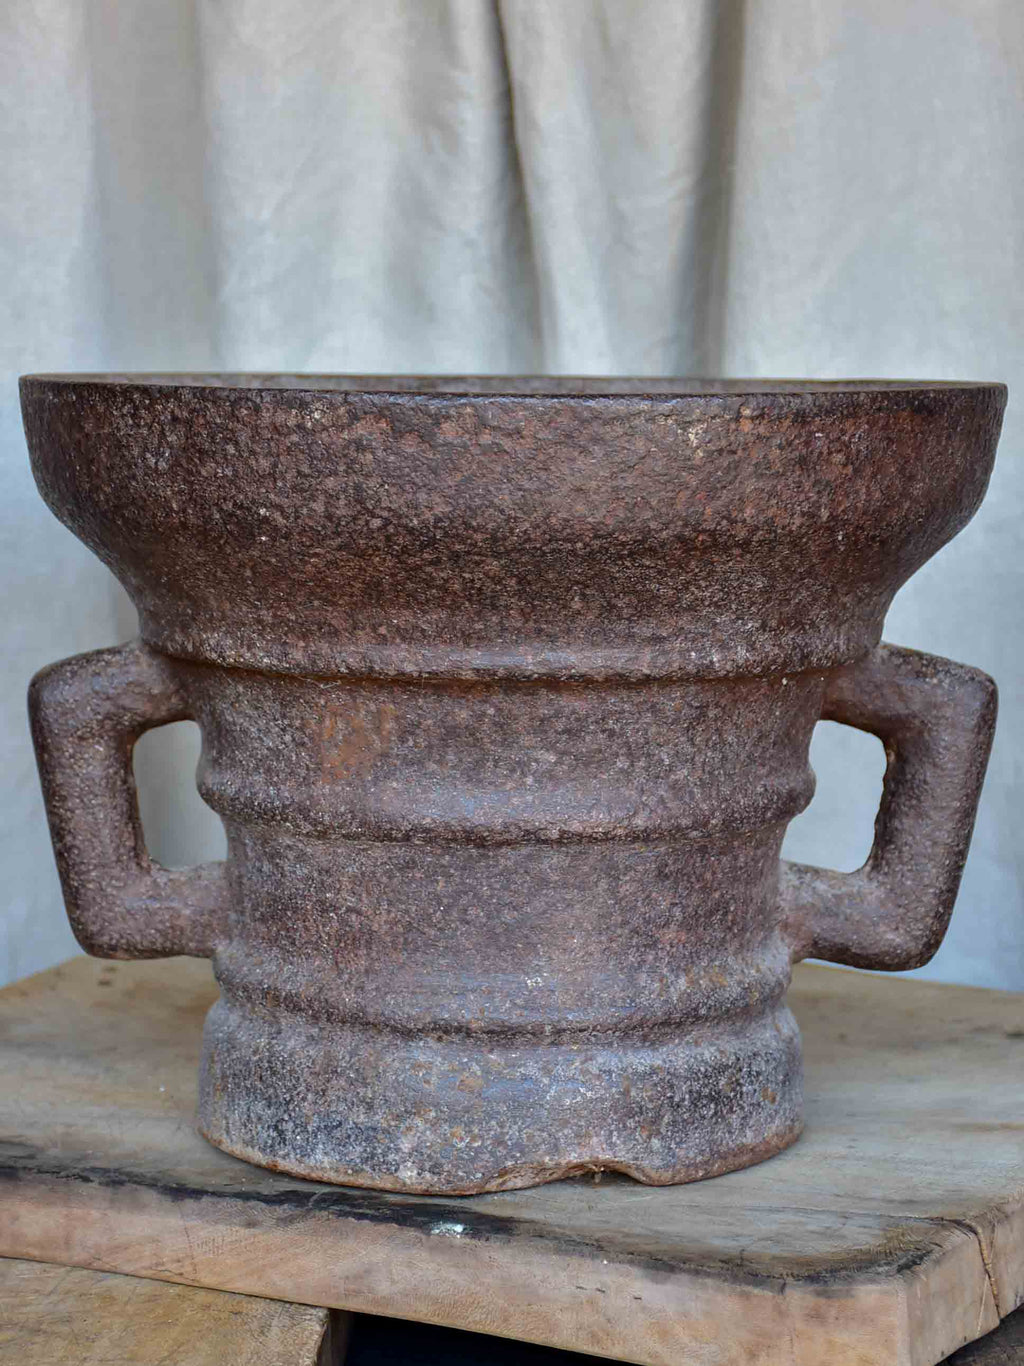 Antique iron mortar with bracket arms - European